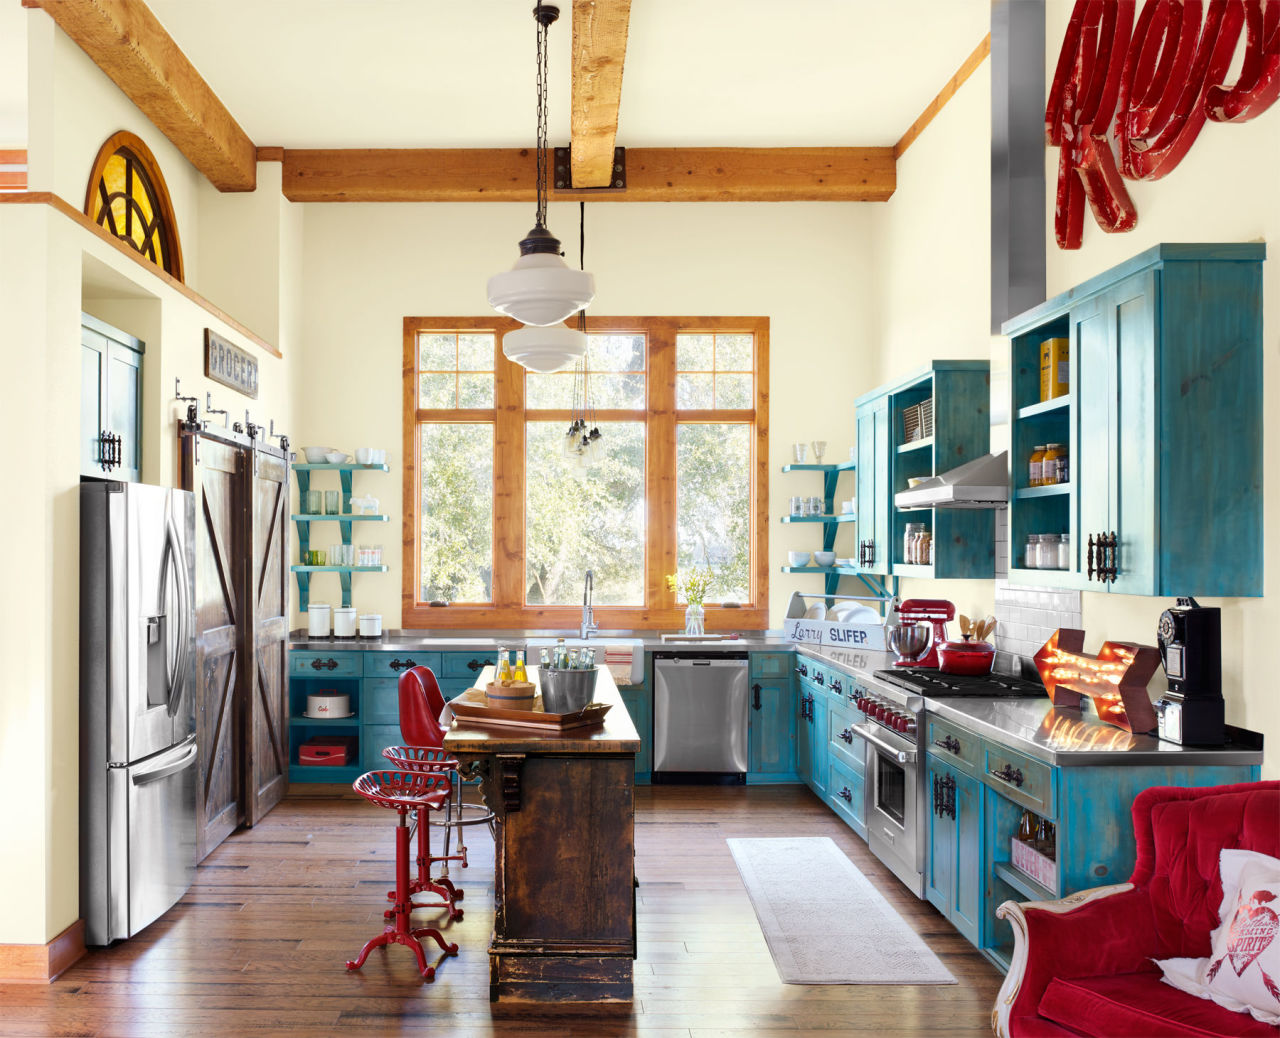 Retro Red Kitchen Retro Vintage Red And Turquoise Kitchen Decor Interiors By Color